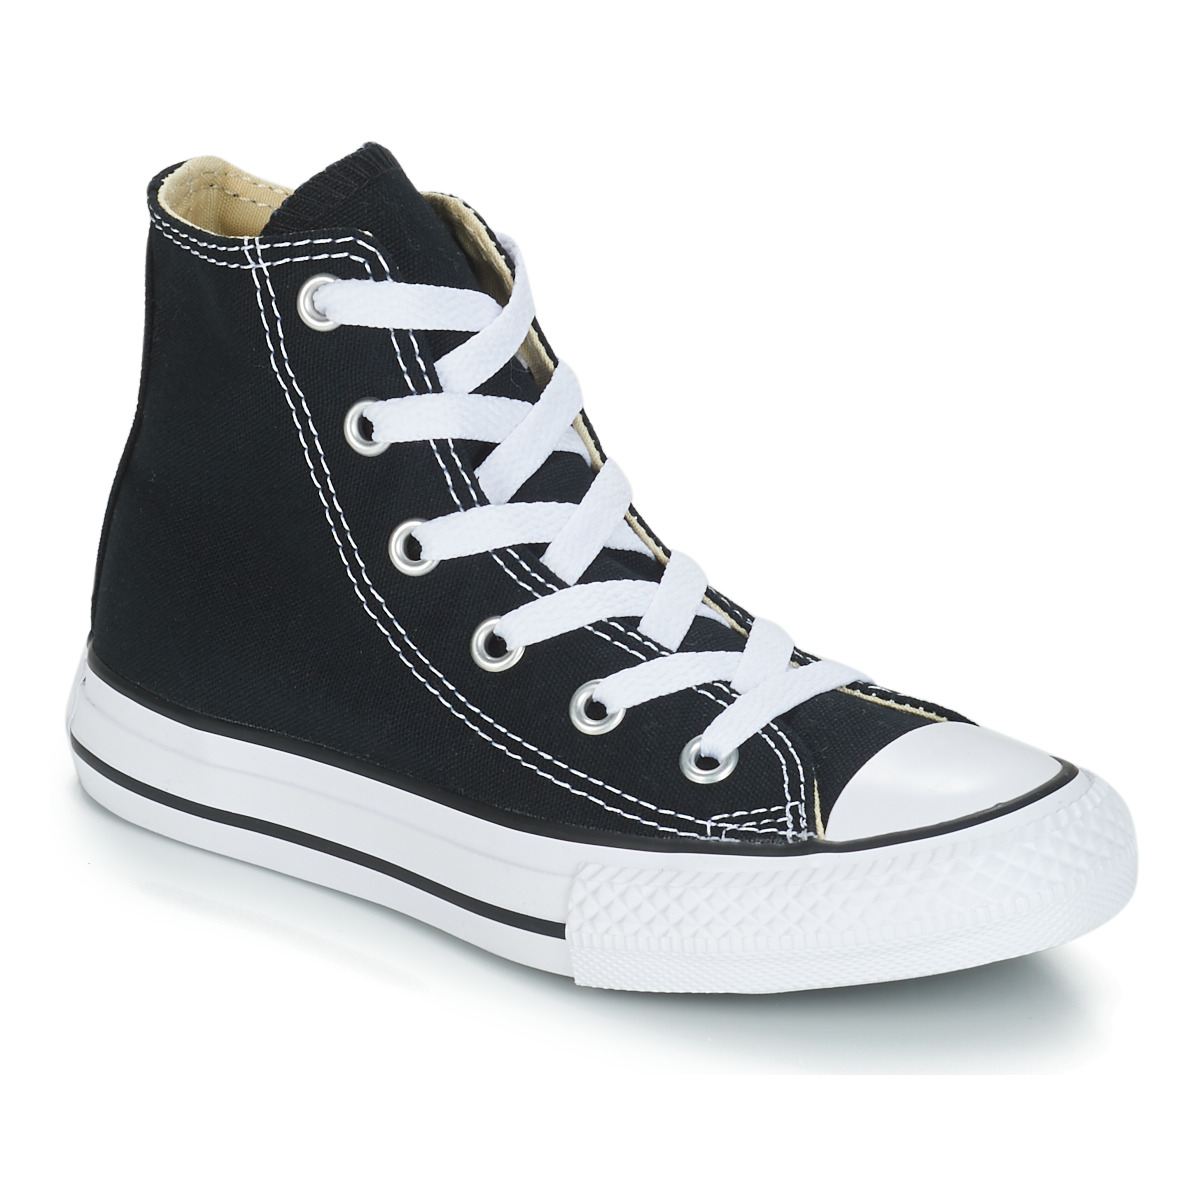 959ec36e3bde6 Chaussures Enfant Baskets montantes Converse CHUCK TAYLOR ALL STAR CORE HI  Noir